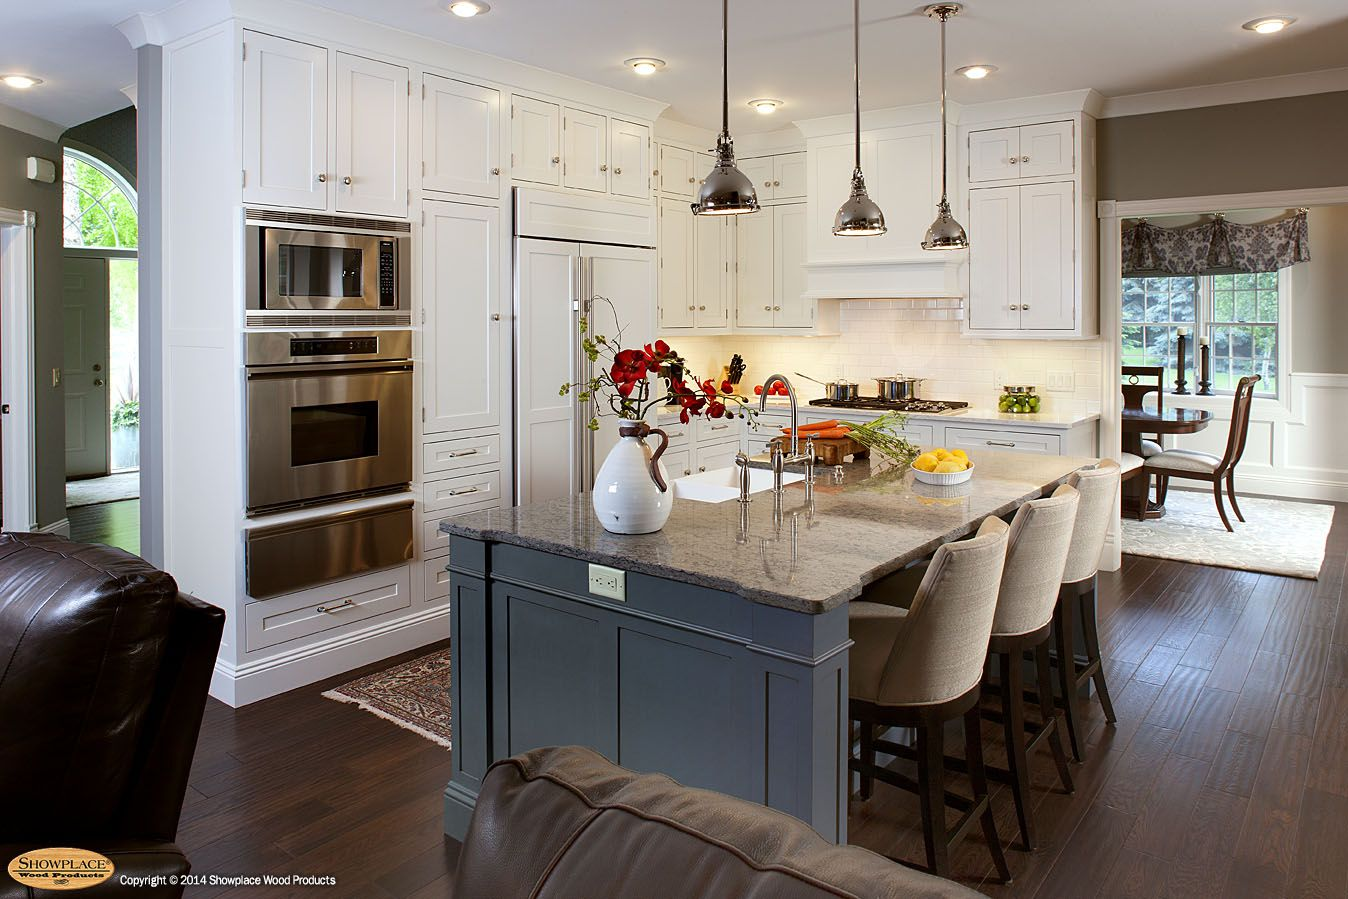 Delightful Kitchen Cabinets In White Paint Finish And Other Paint Finishes